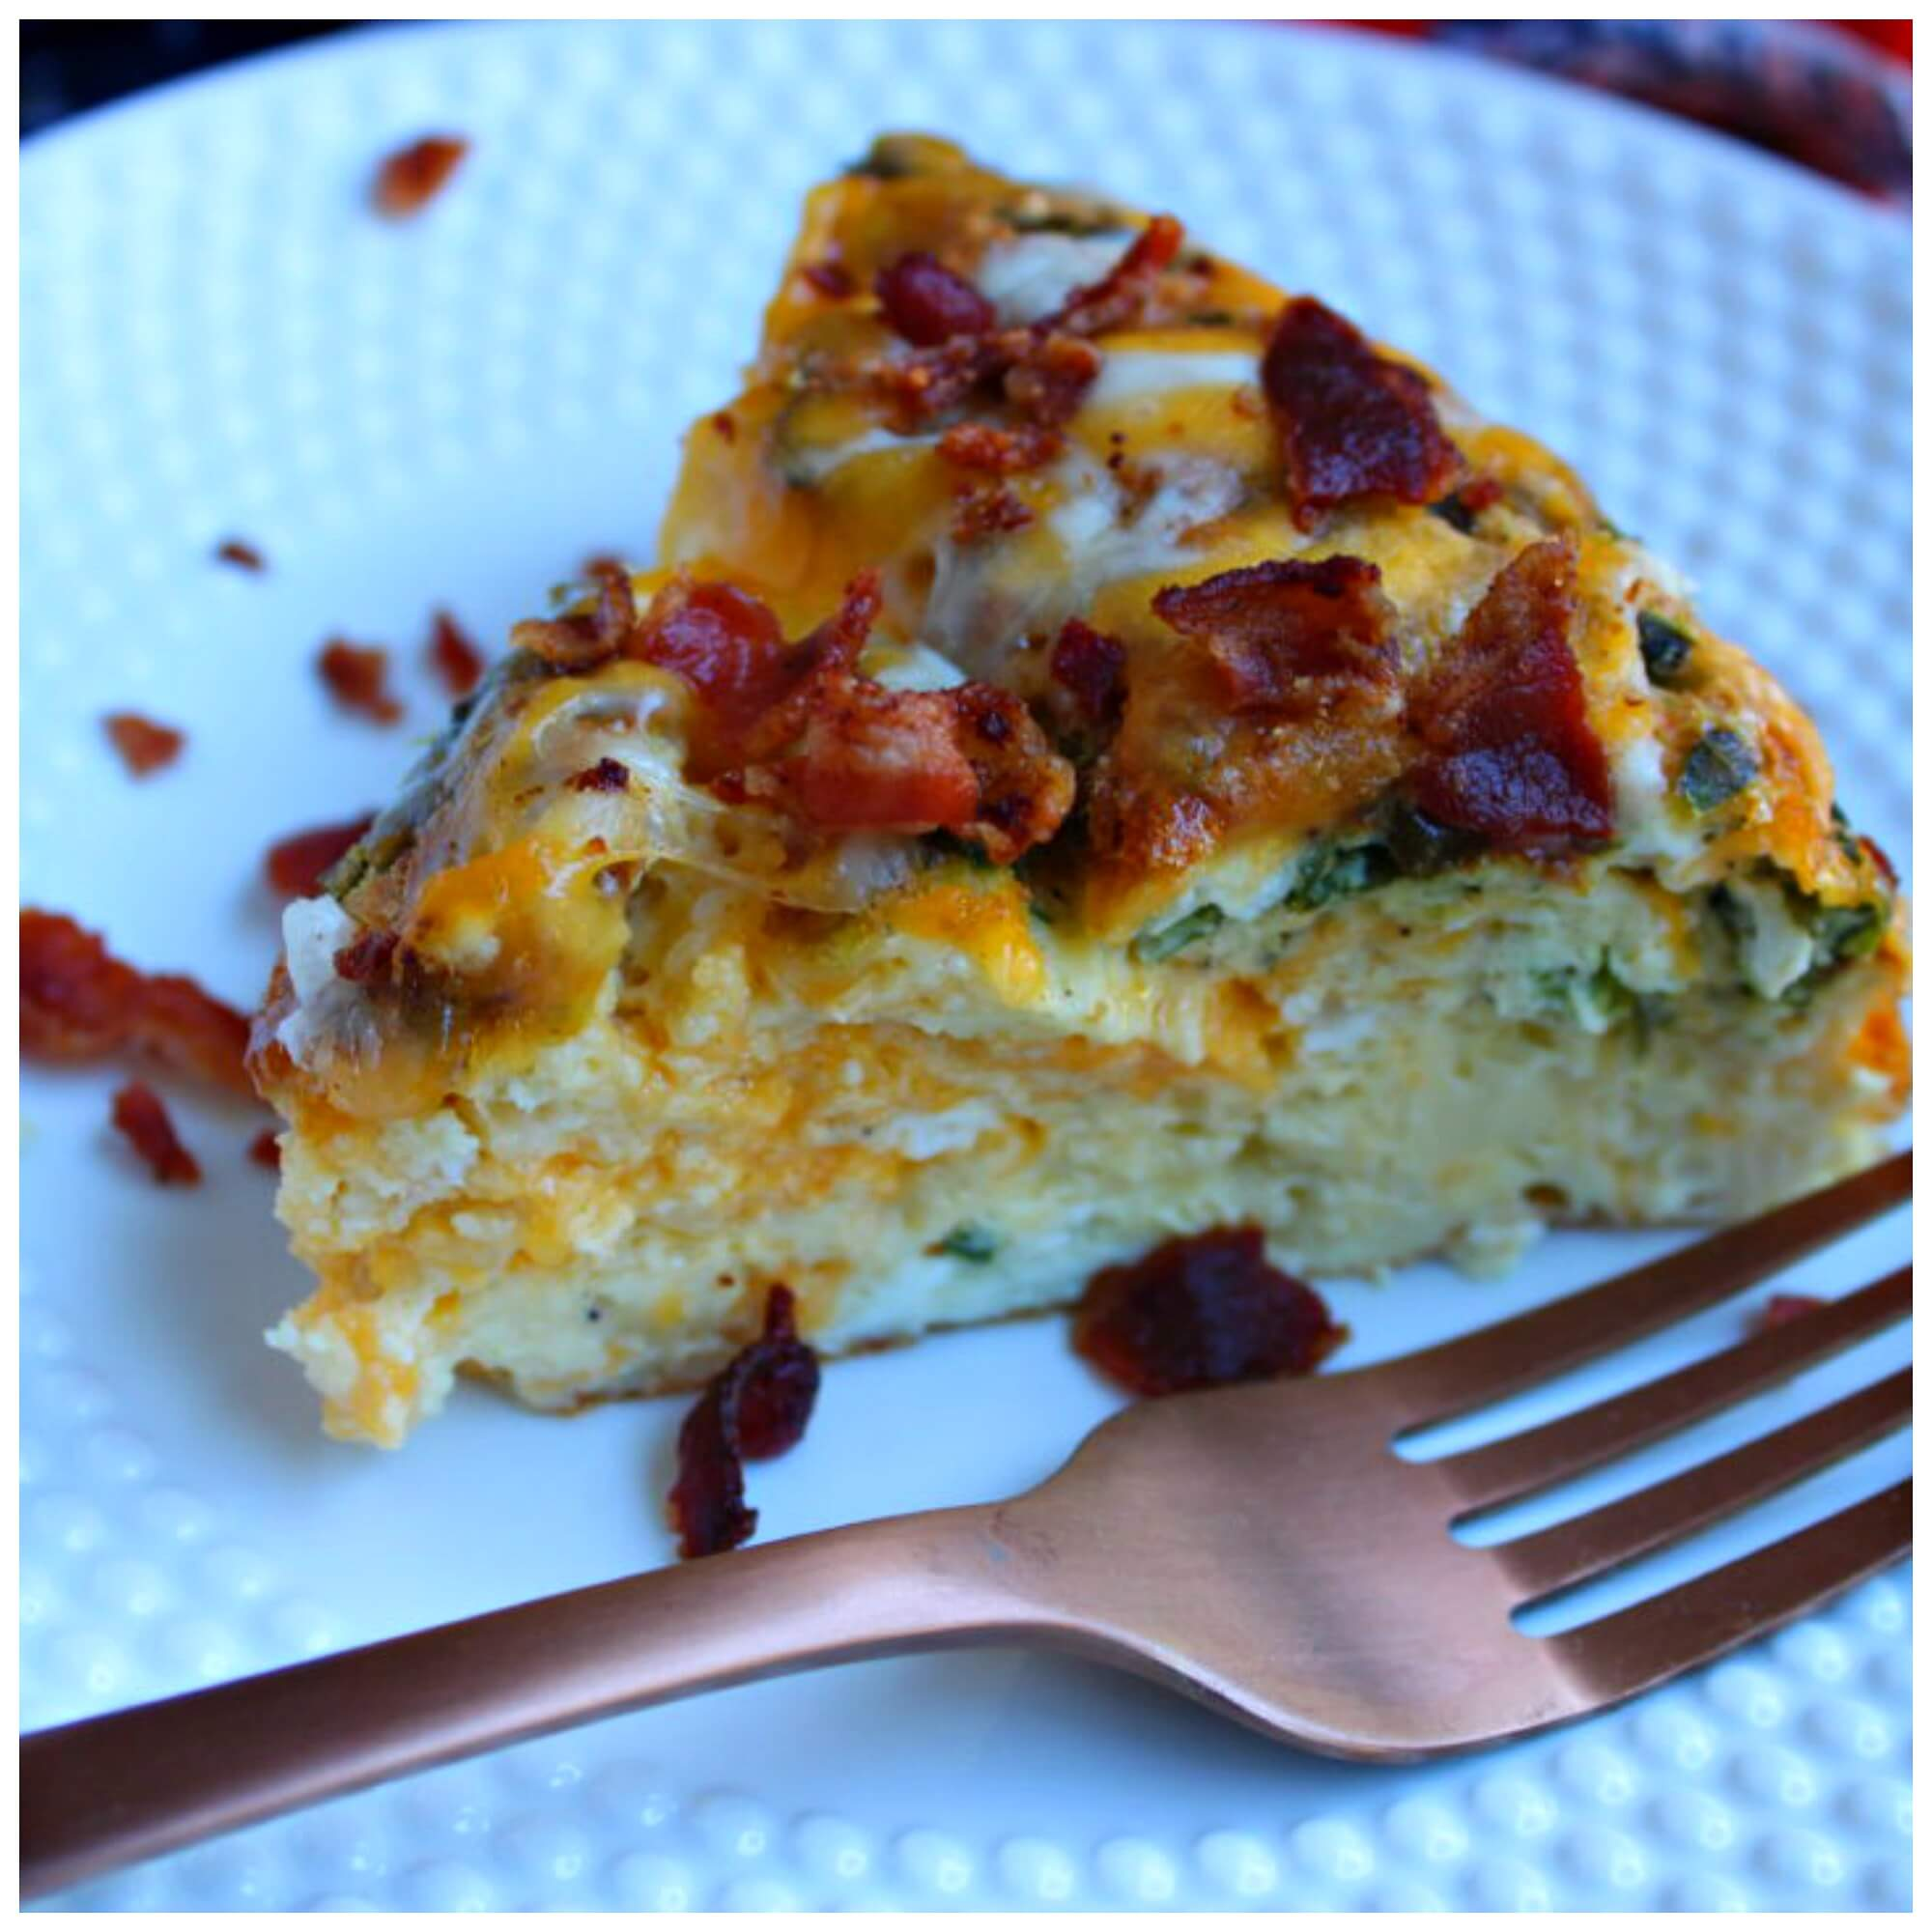 Breakfast casserole with bacon on a white plate